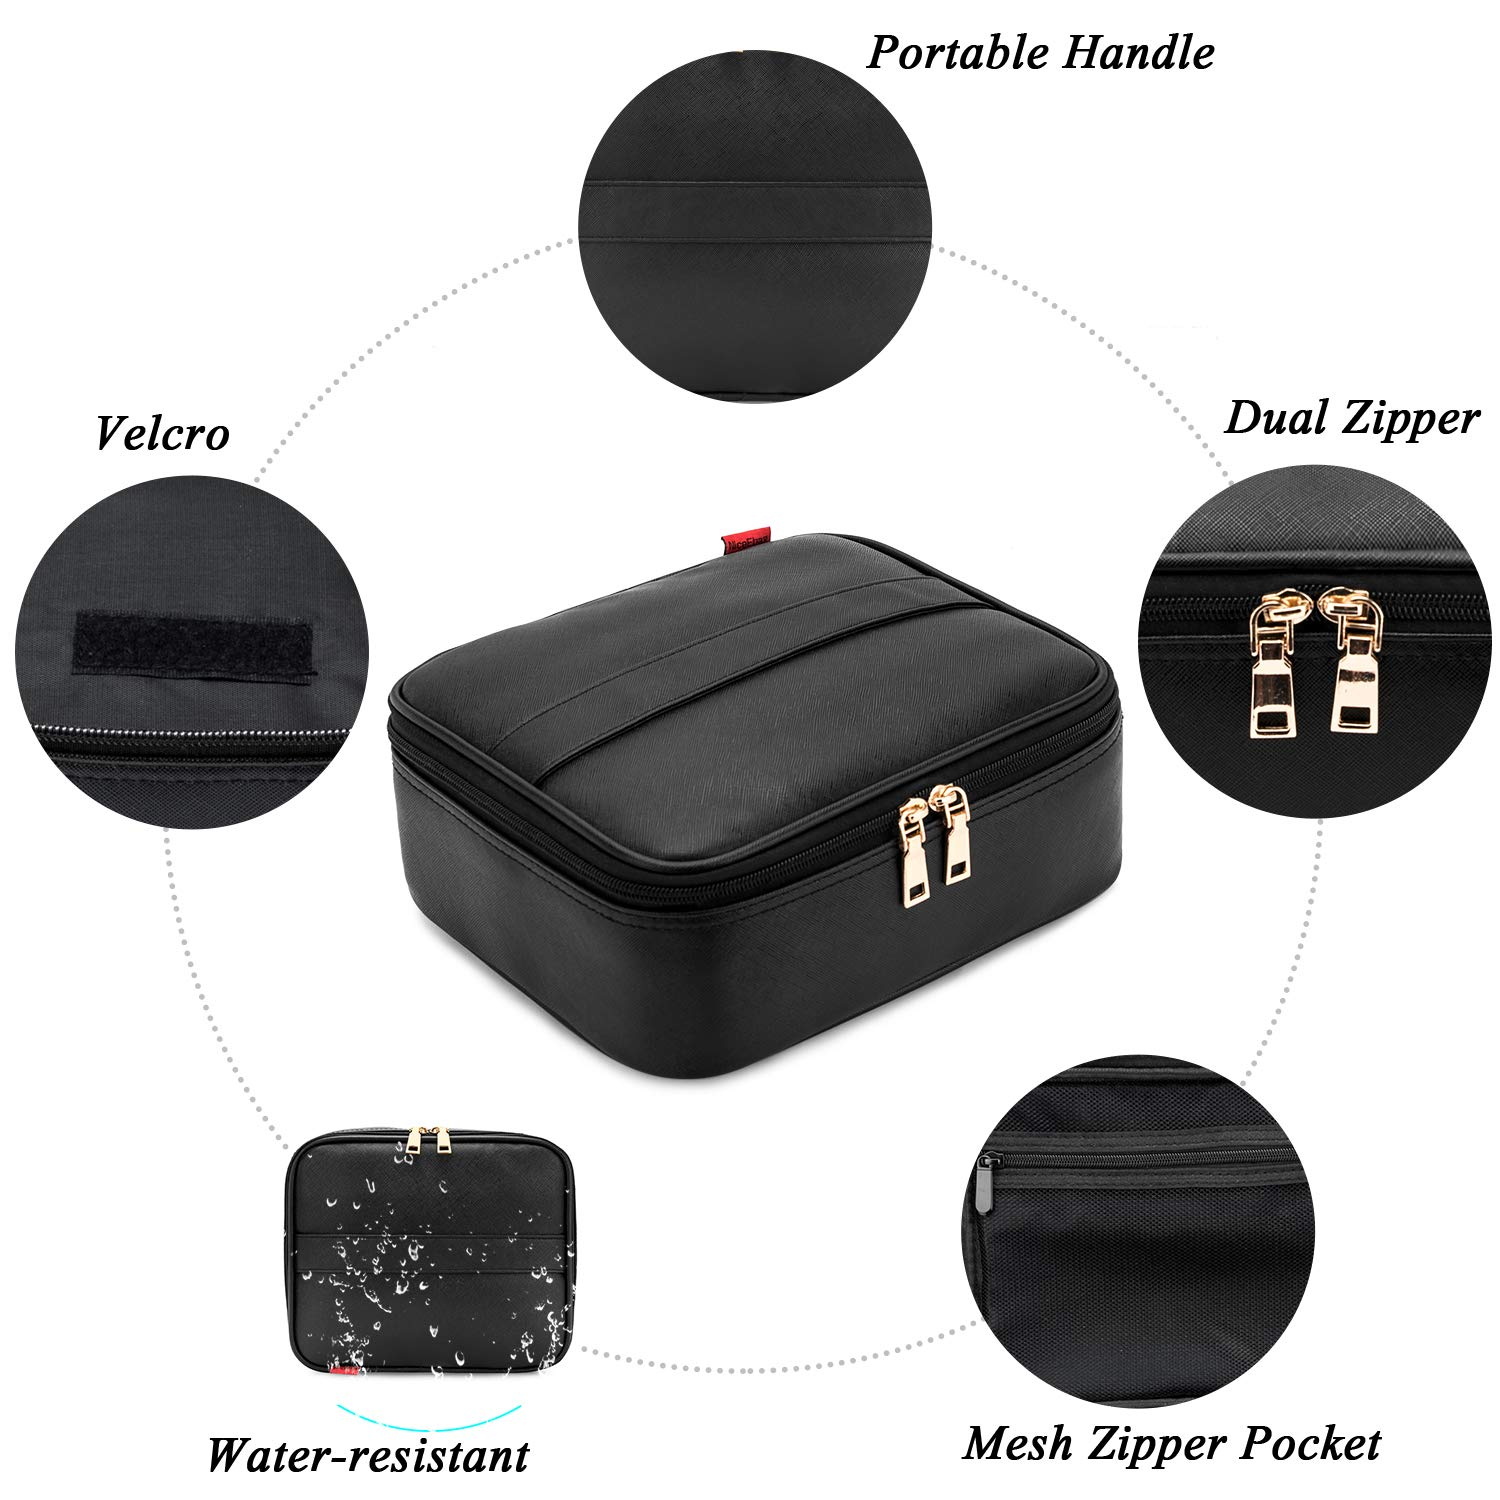 Makeup Bag NiceEbag Travel Cosmetic Bag for Women and Men Cute Makeup Case Leather Cosmetic Case with Adjustable Padded Dividers for Cosmetics Make Up Tools Toiletry Jewelry,Black by NiceEbag (Image #7)